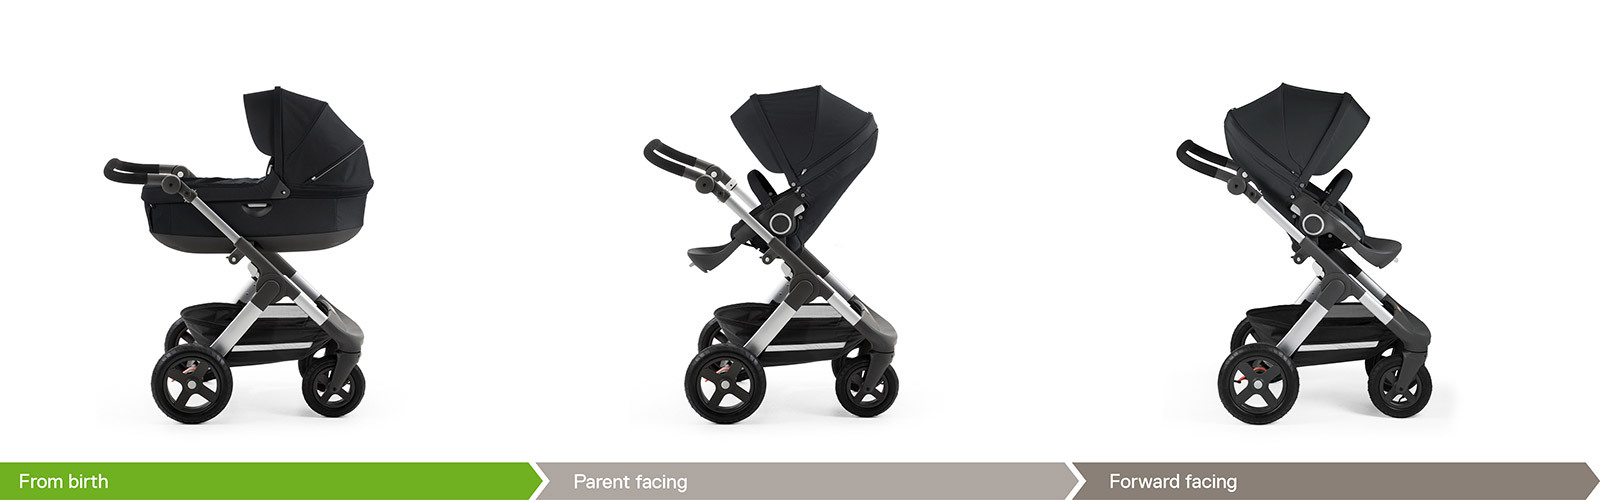 Stokke Trailz Grow chain